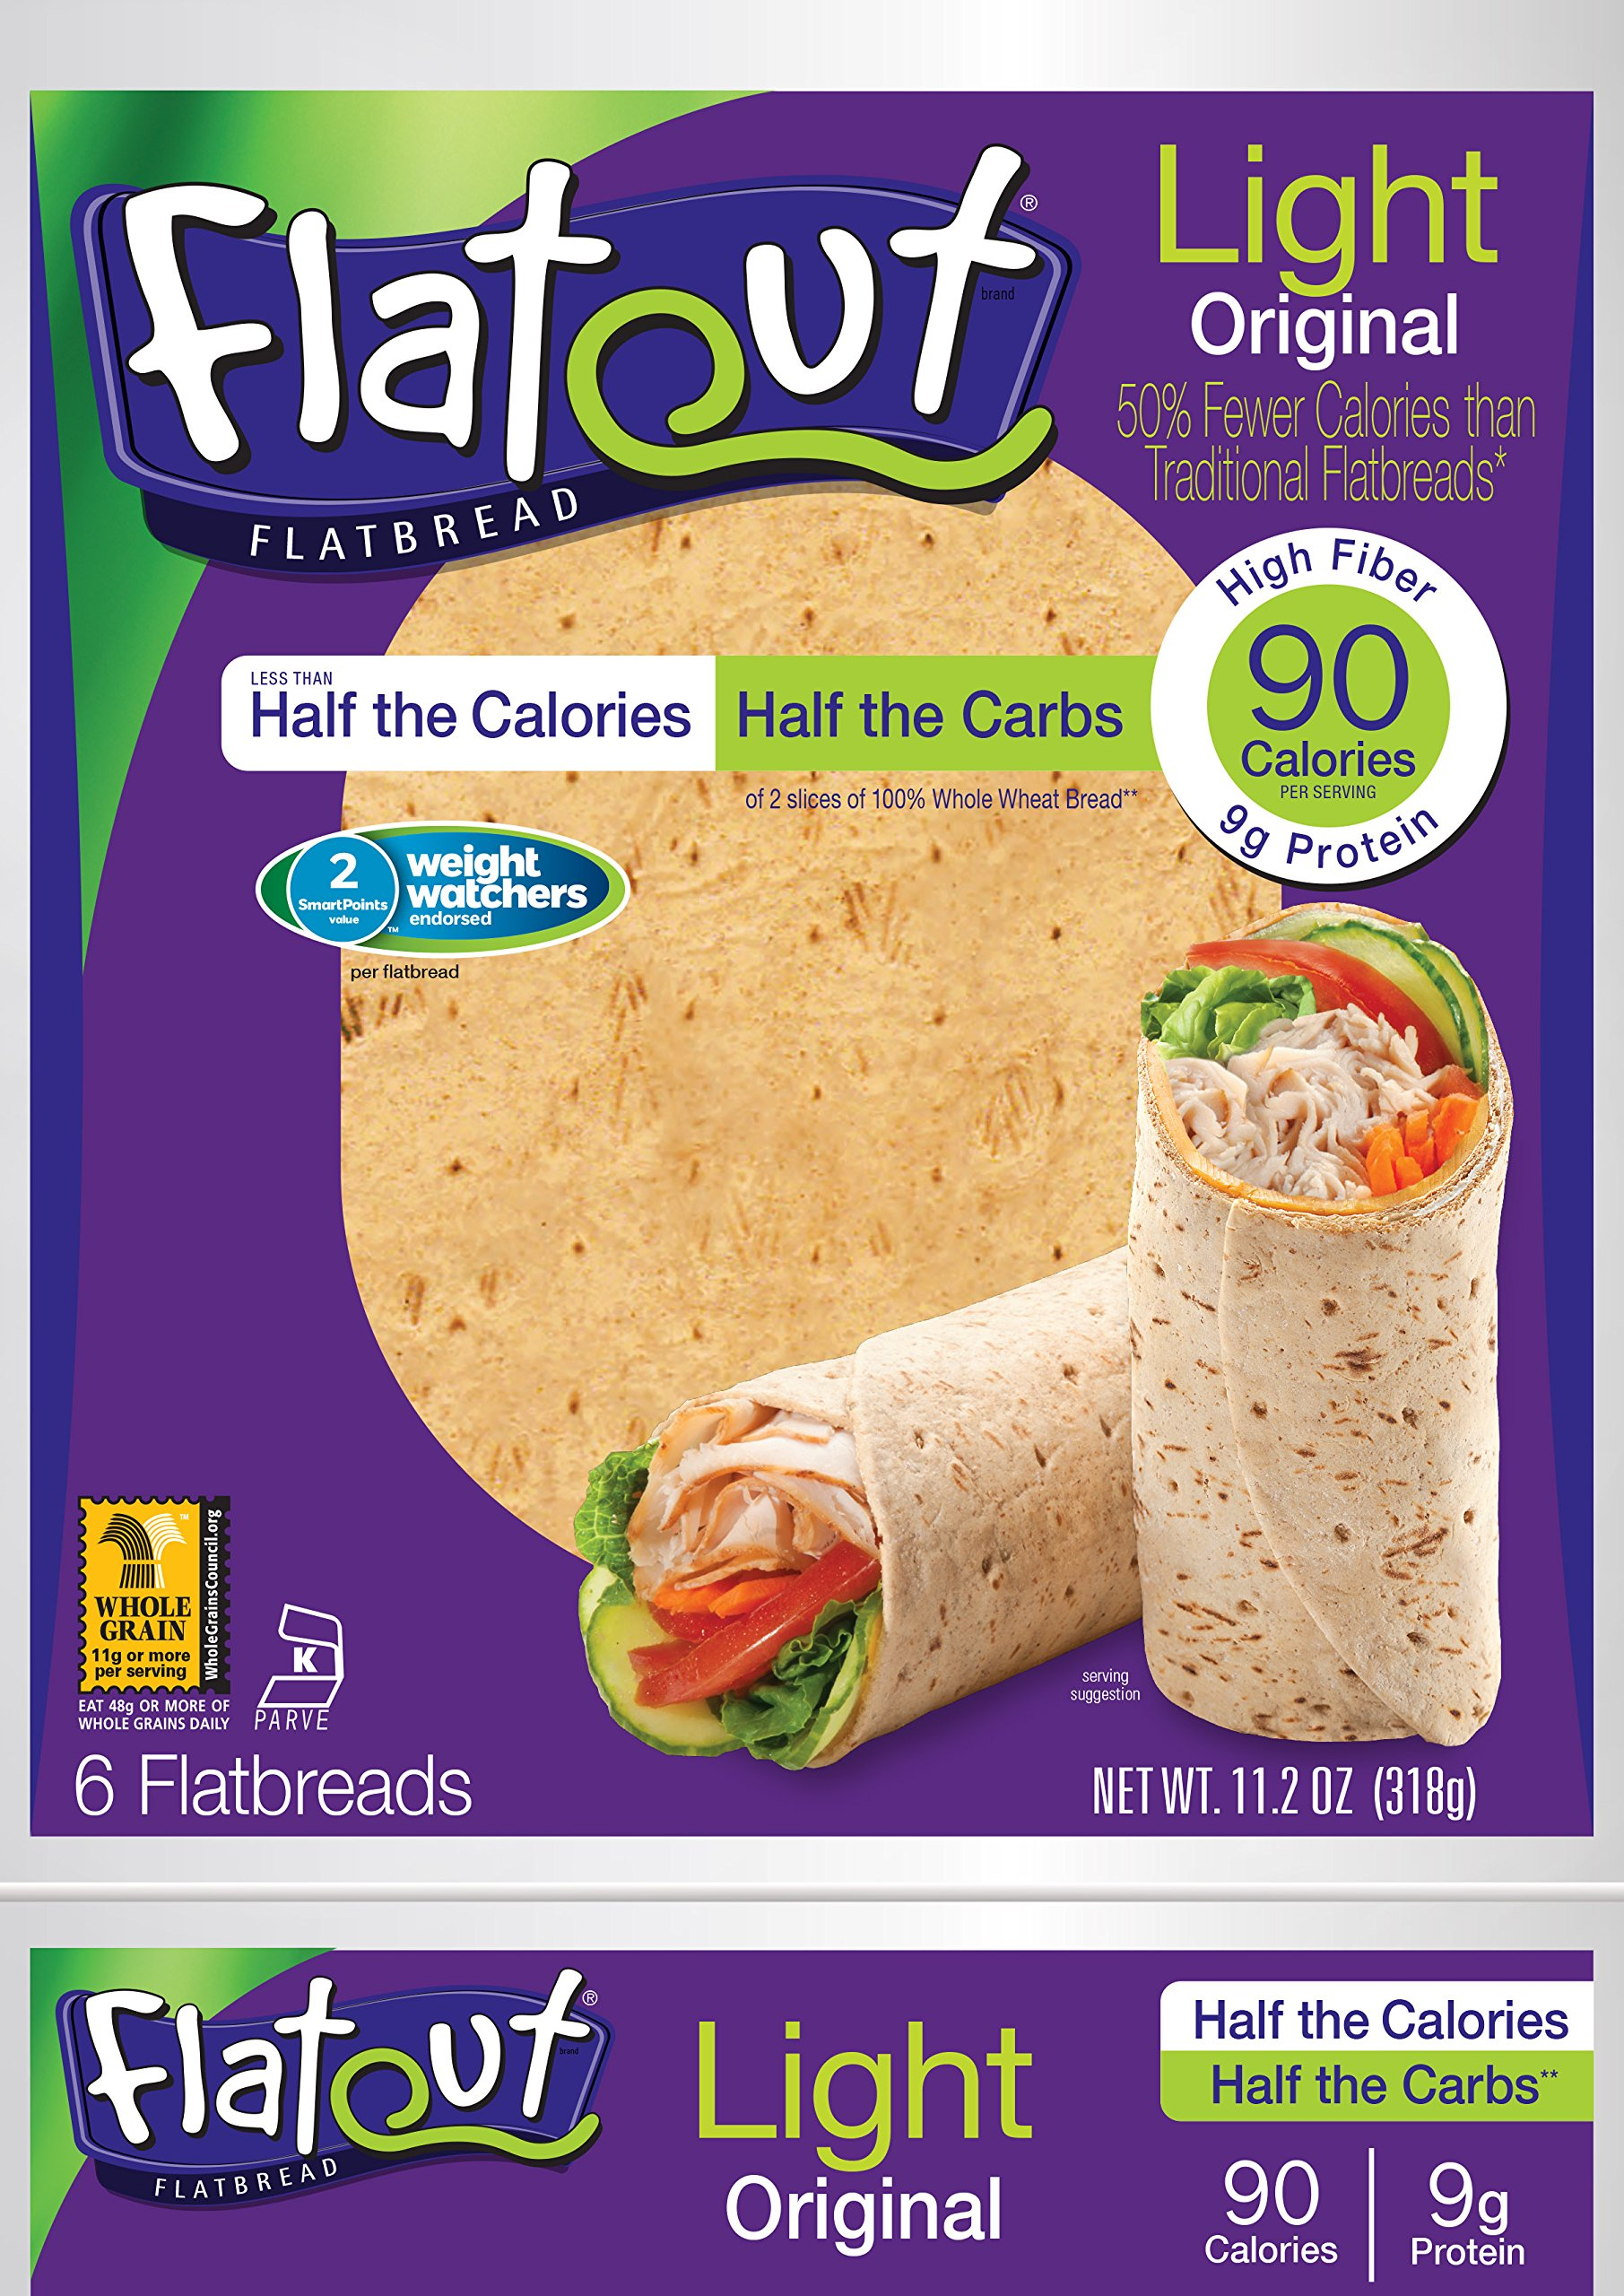 FLATOUT Flatbread Wraps - LIGHT ORIGINAL - 90 Calories - 2 WEIGHT WATCHERS SmartPoints value per flatbread (1 Pack of 6 Flatbreads)